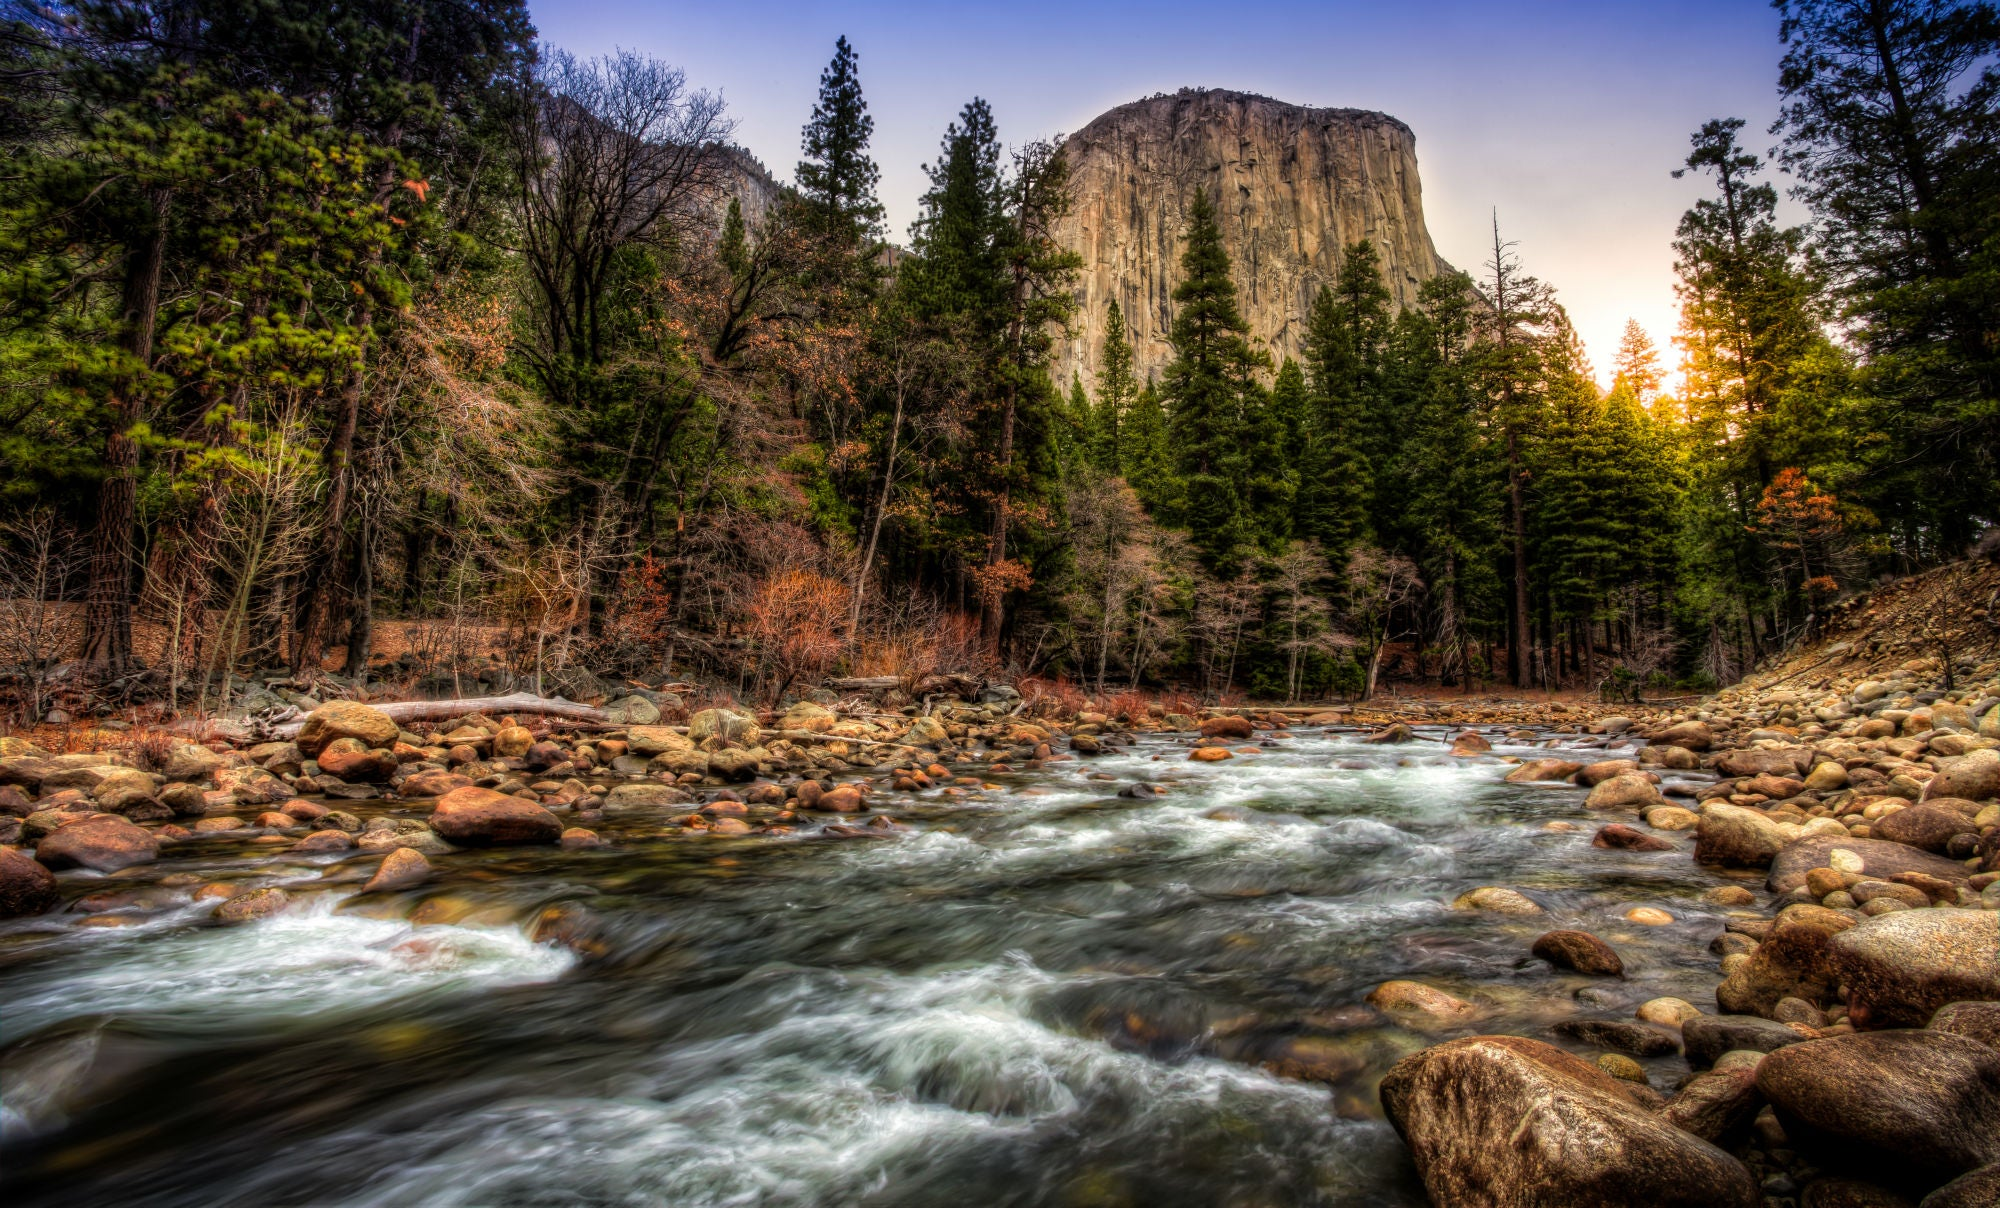 Yosemite's Upper Pines Campground: 7 Pieces of Advice from